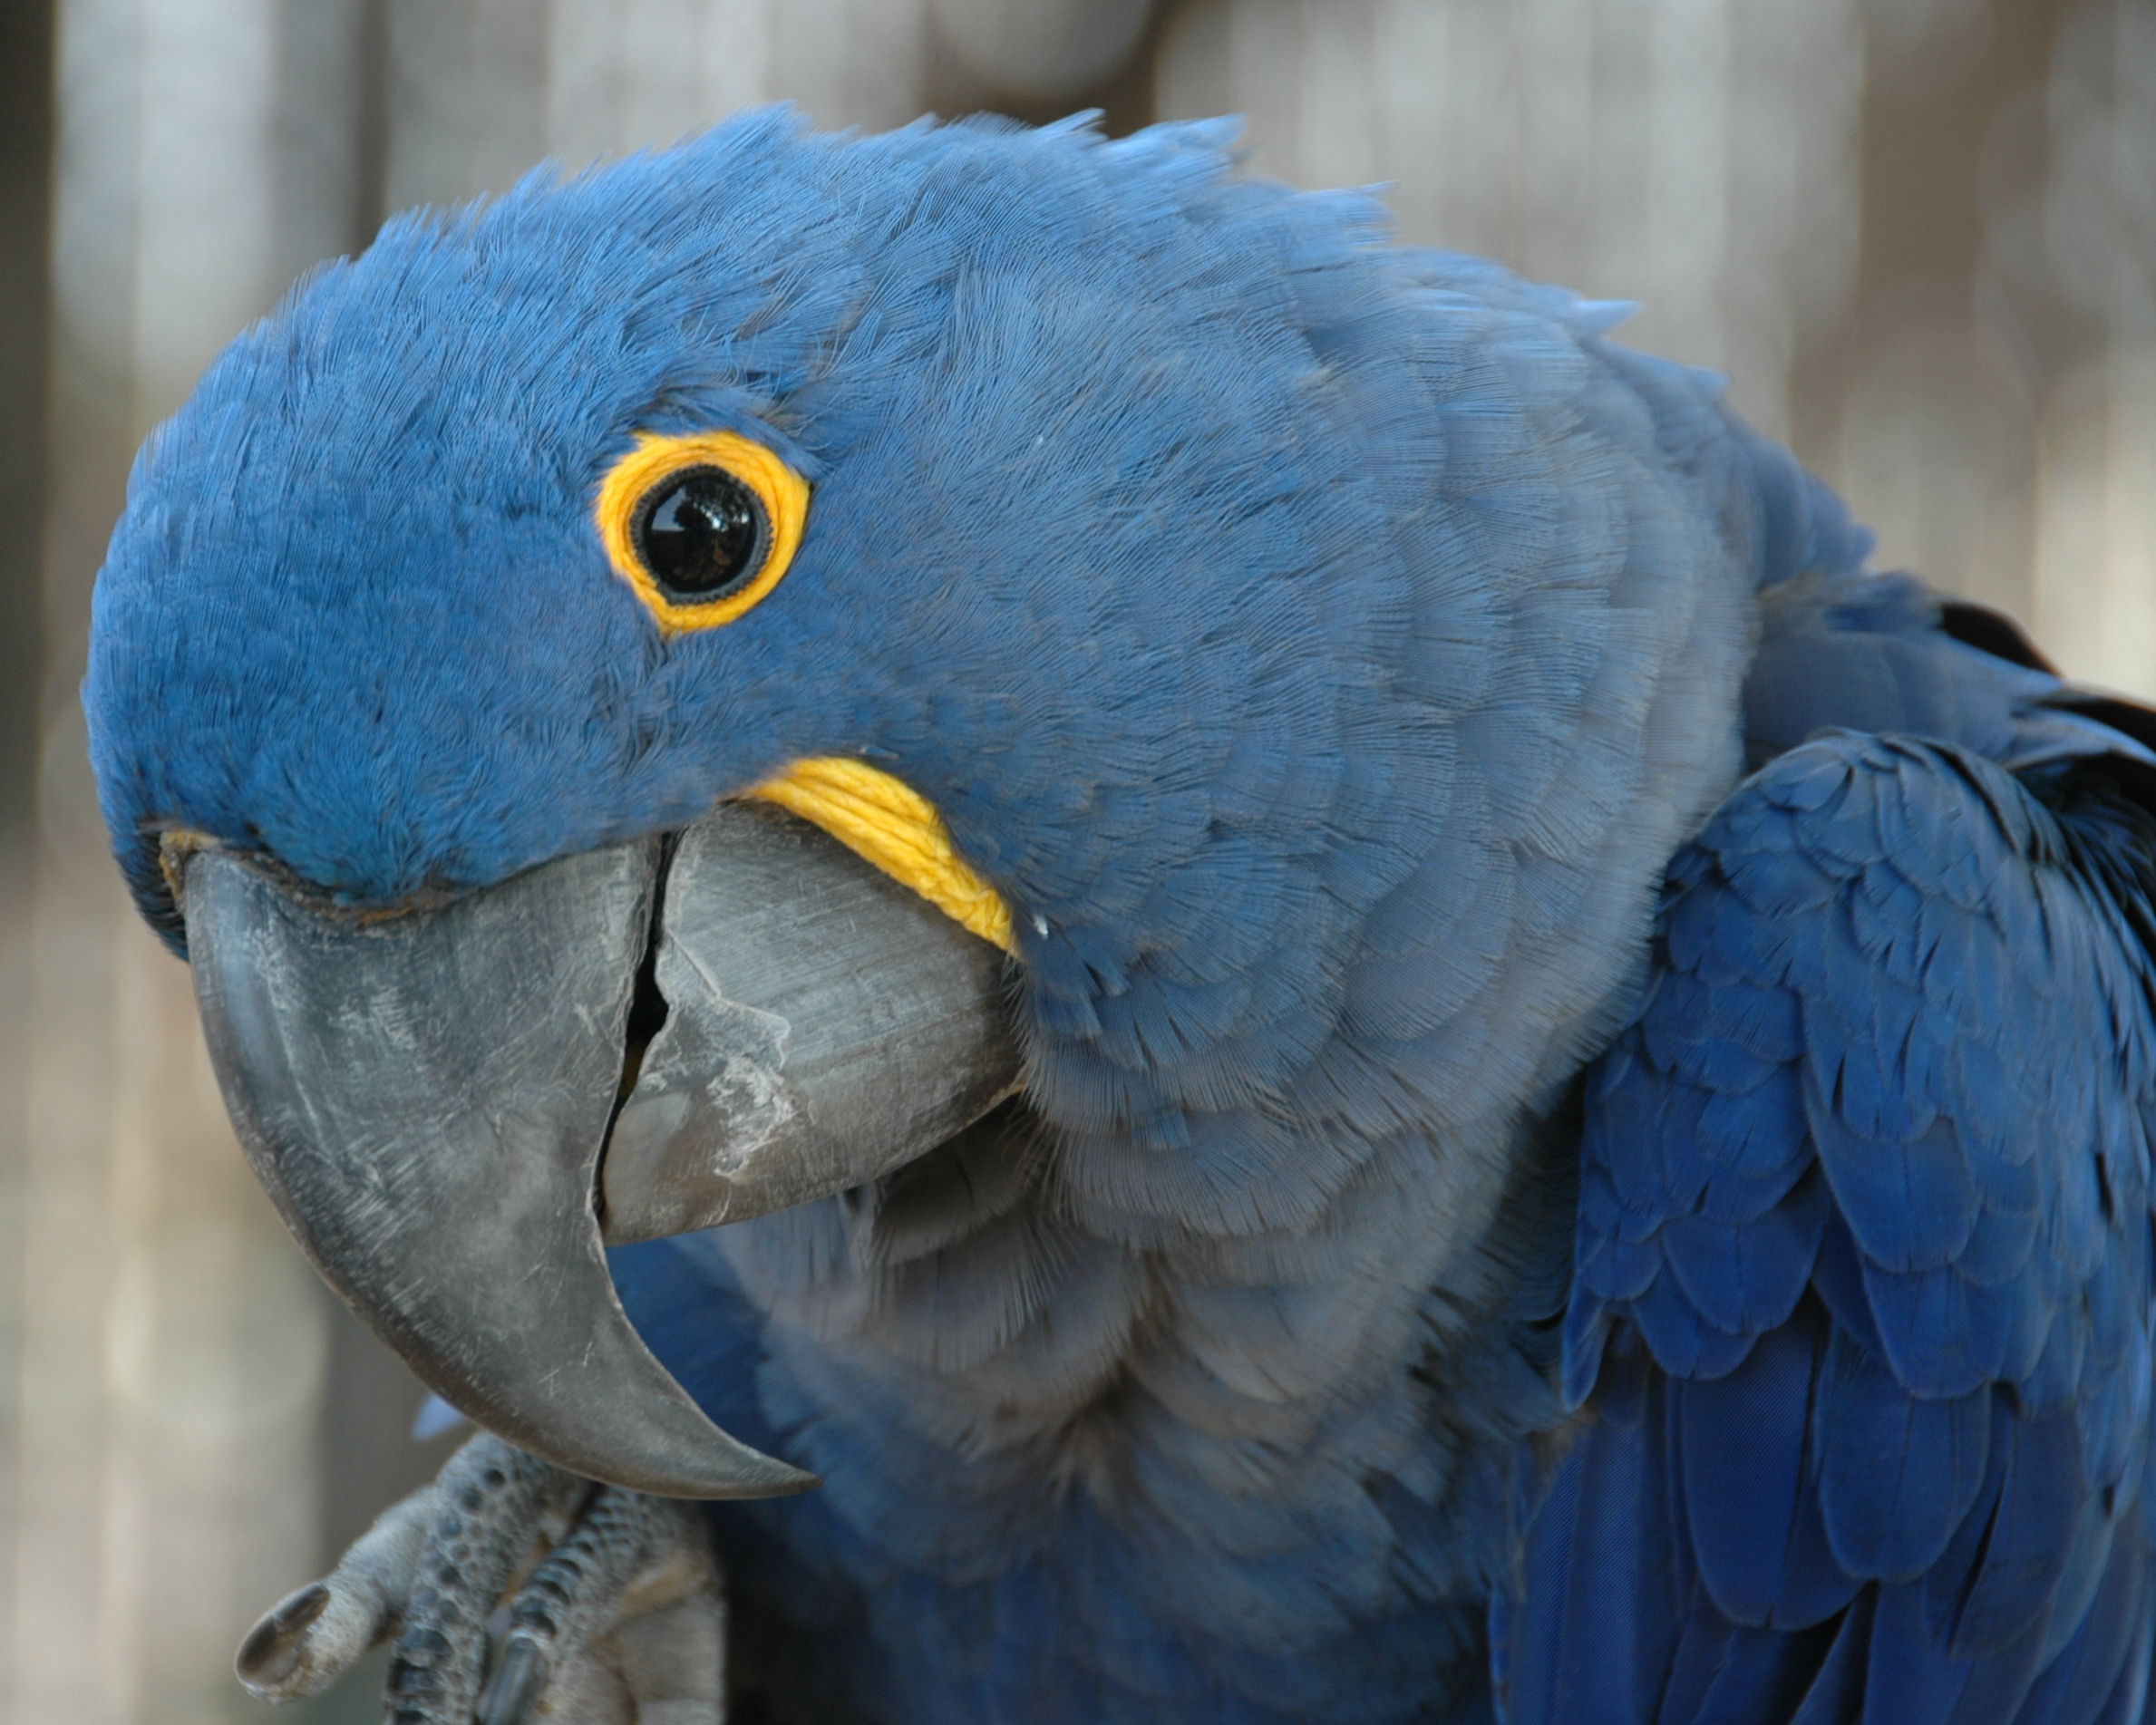 http://upload.wikimedia.org/wikipedia/commons/2/2a/Anodorhynchus_hyacinthinus_-Hyacinth_Macaw_-side_of_head.jpg